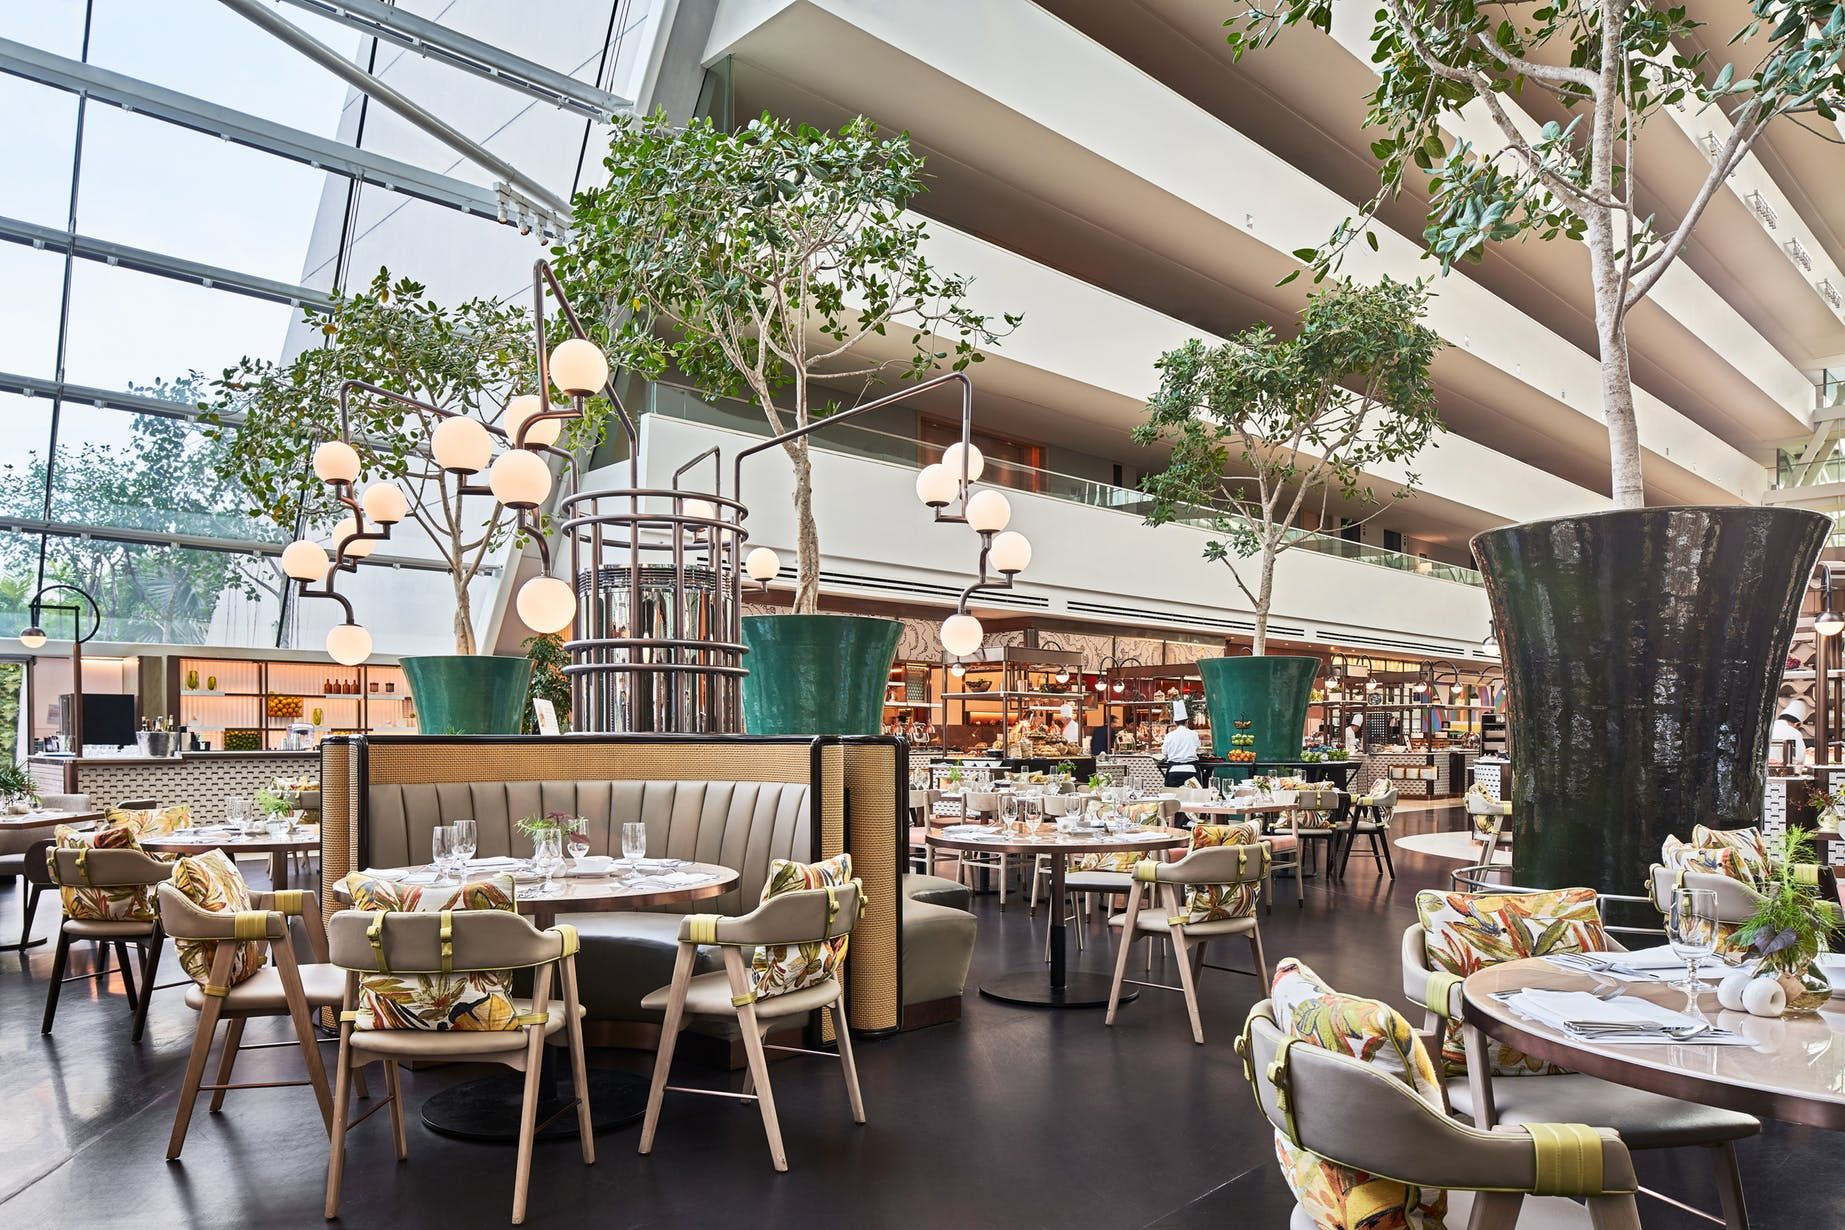 3d2c8bac7bcfcb24924121420604139e - Dining At Canopy Gardens By The Bay